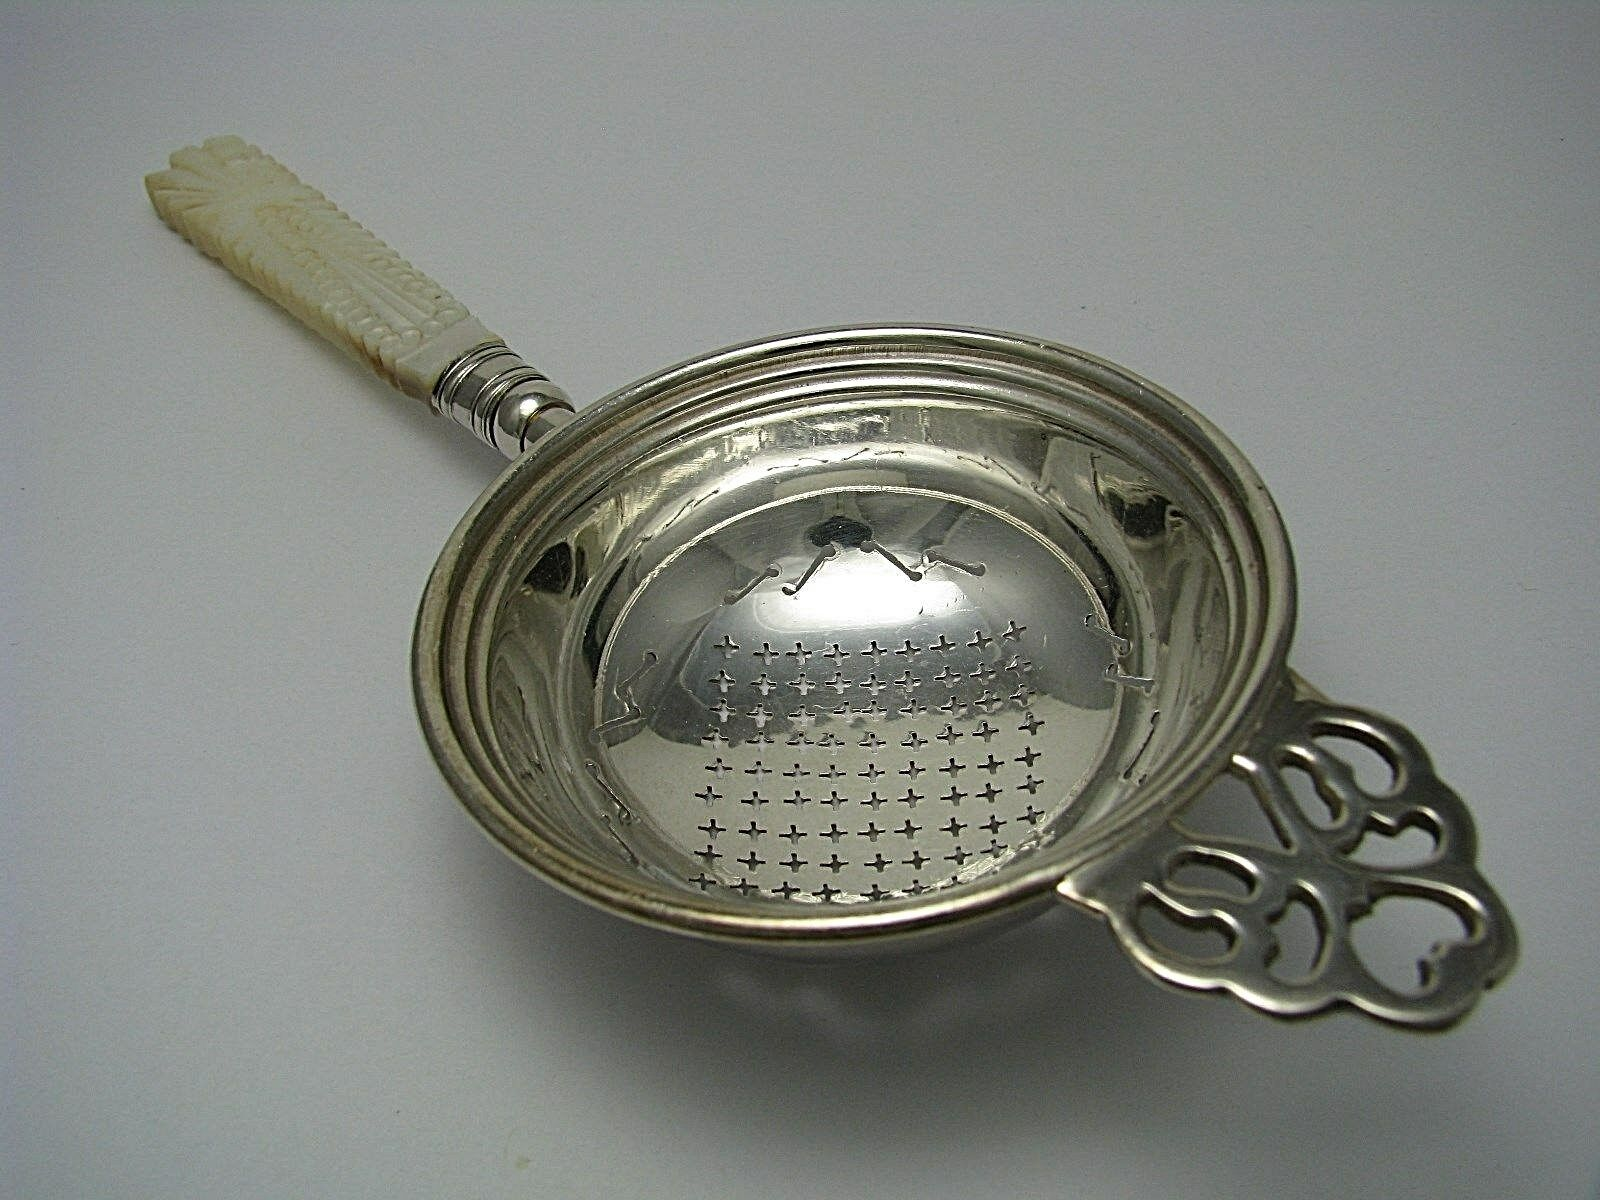 SILVER PLATED TEA STRAINER MOTHER OF PEARL HANDLE SIFTER SERVING LADLE Ca1900 s - $245.00